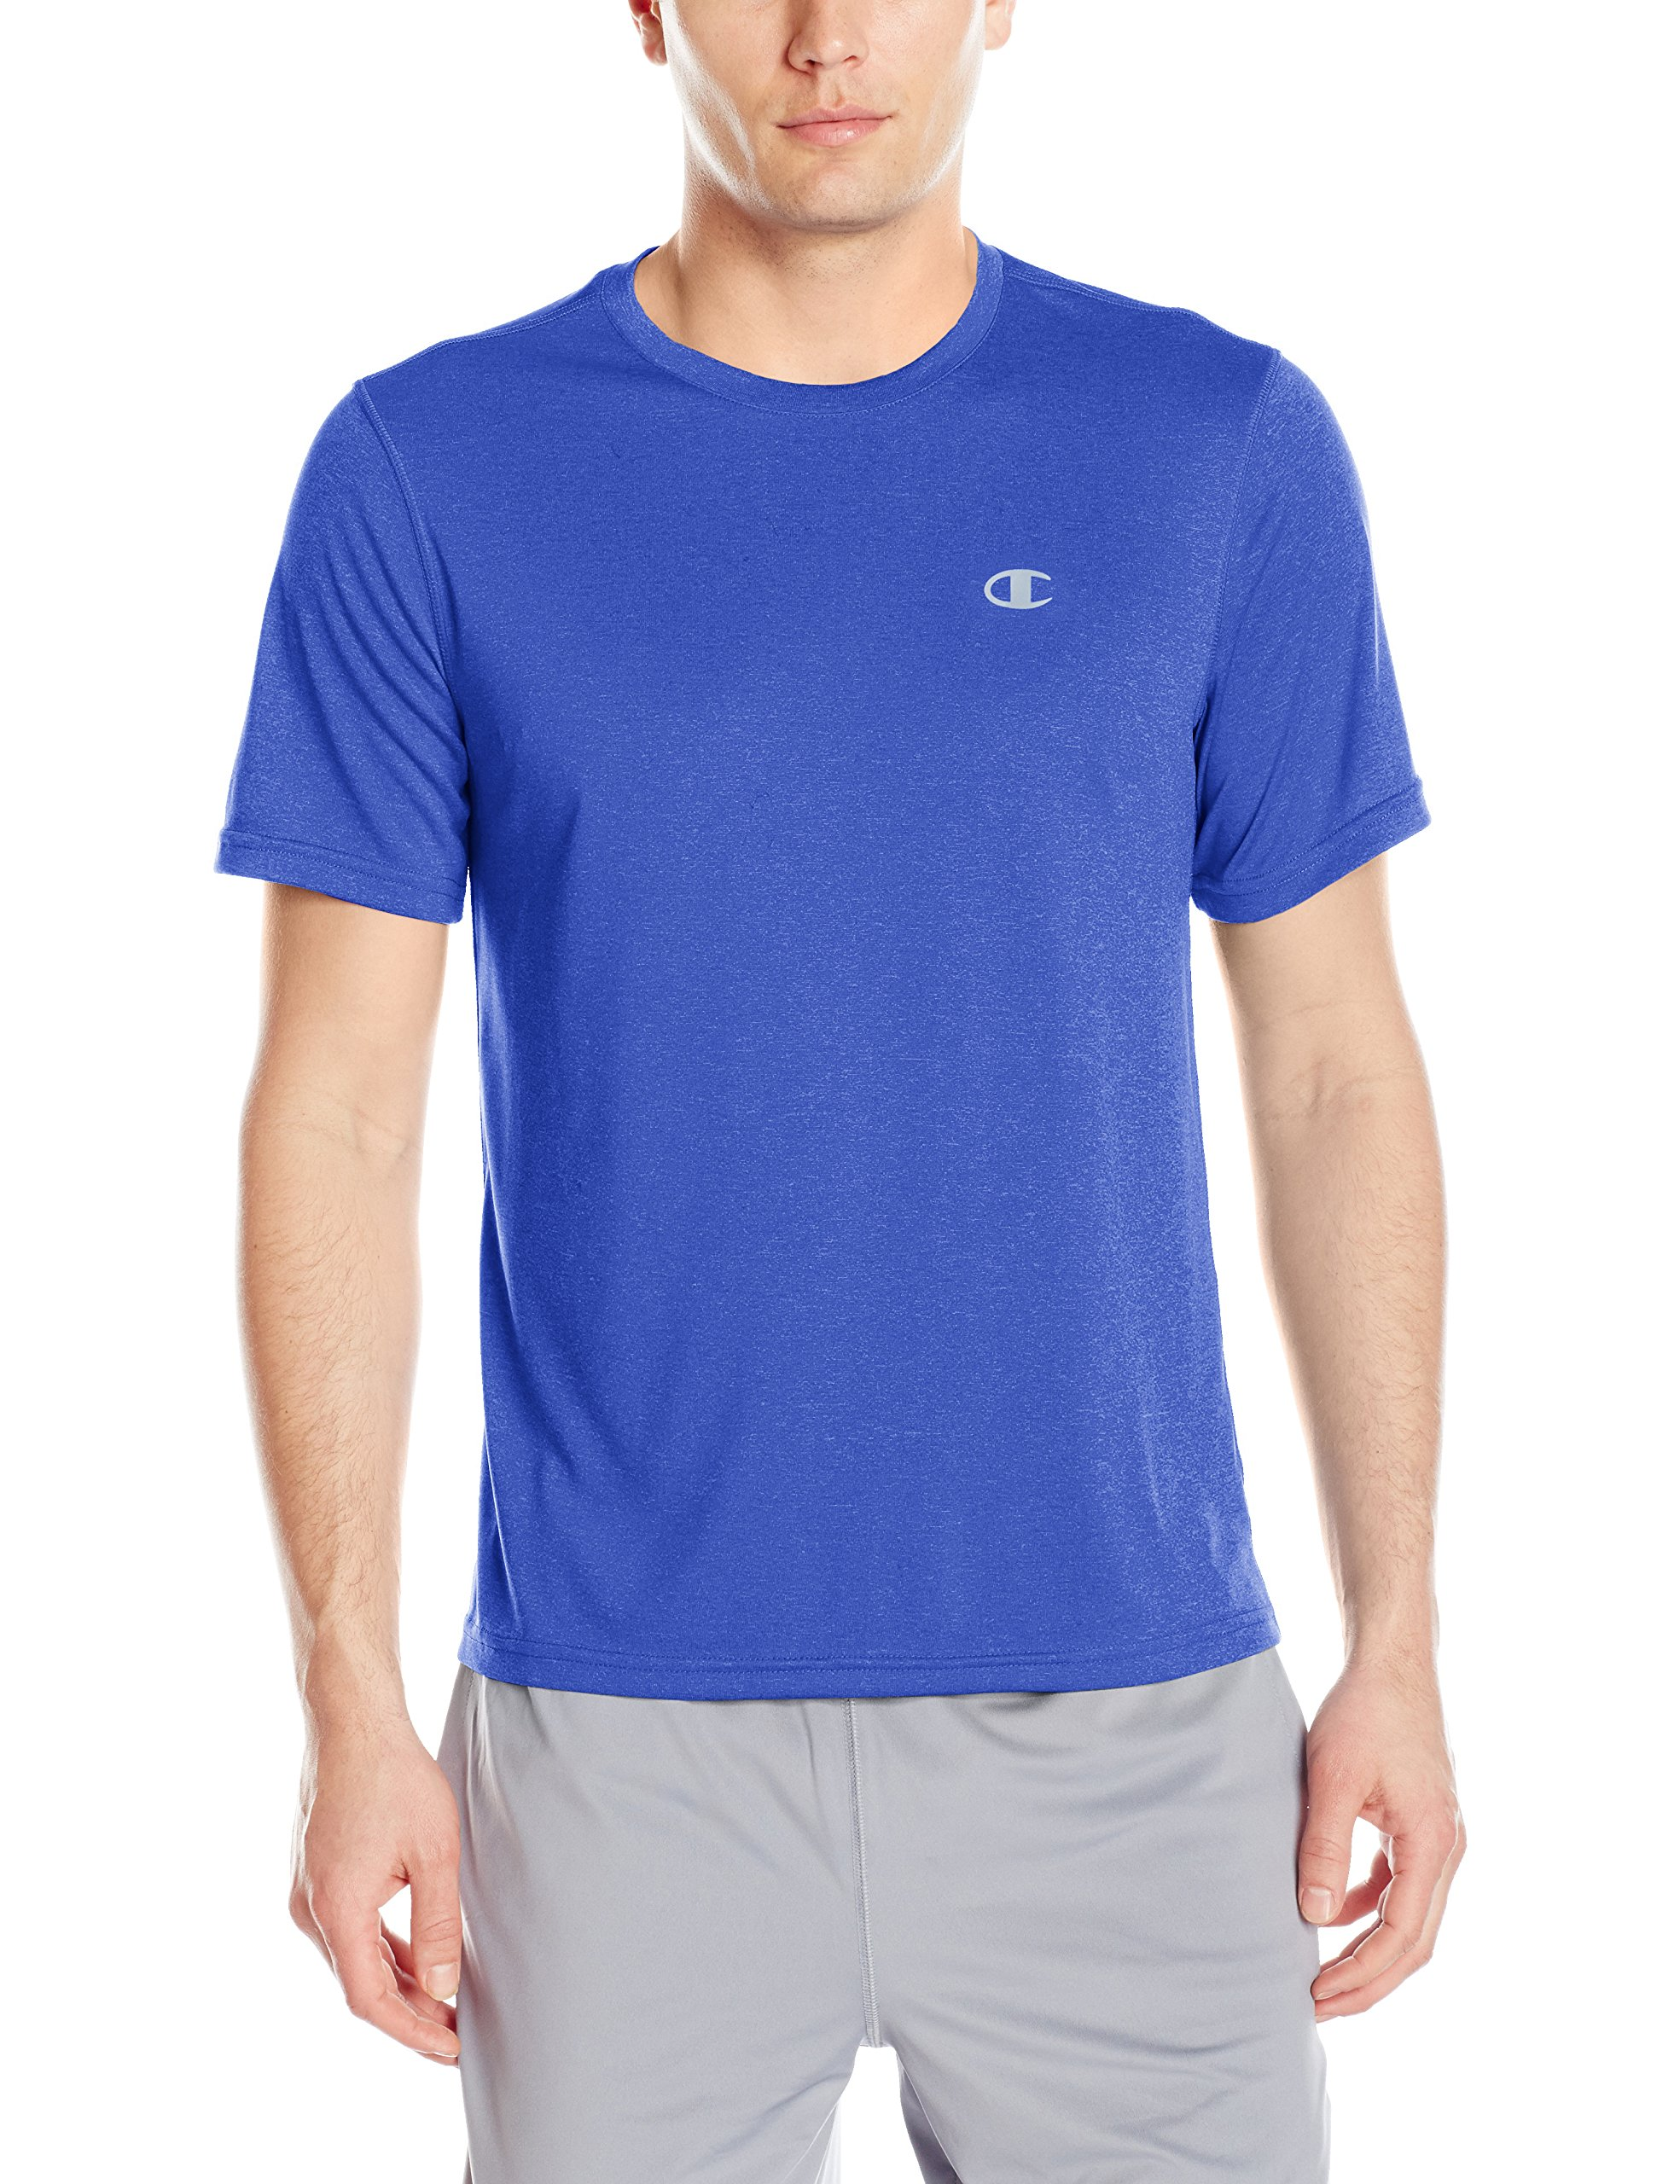 Champion Men's Double Dry Tee, Surf the Web Heather, X-Large by Champion